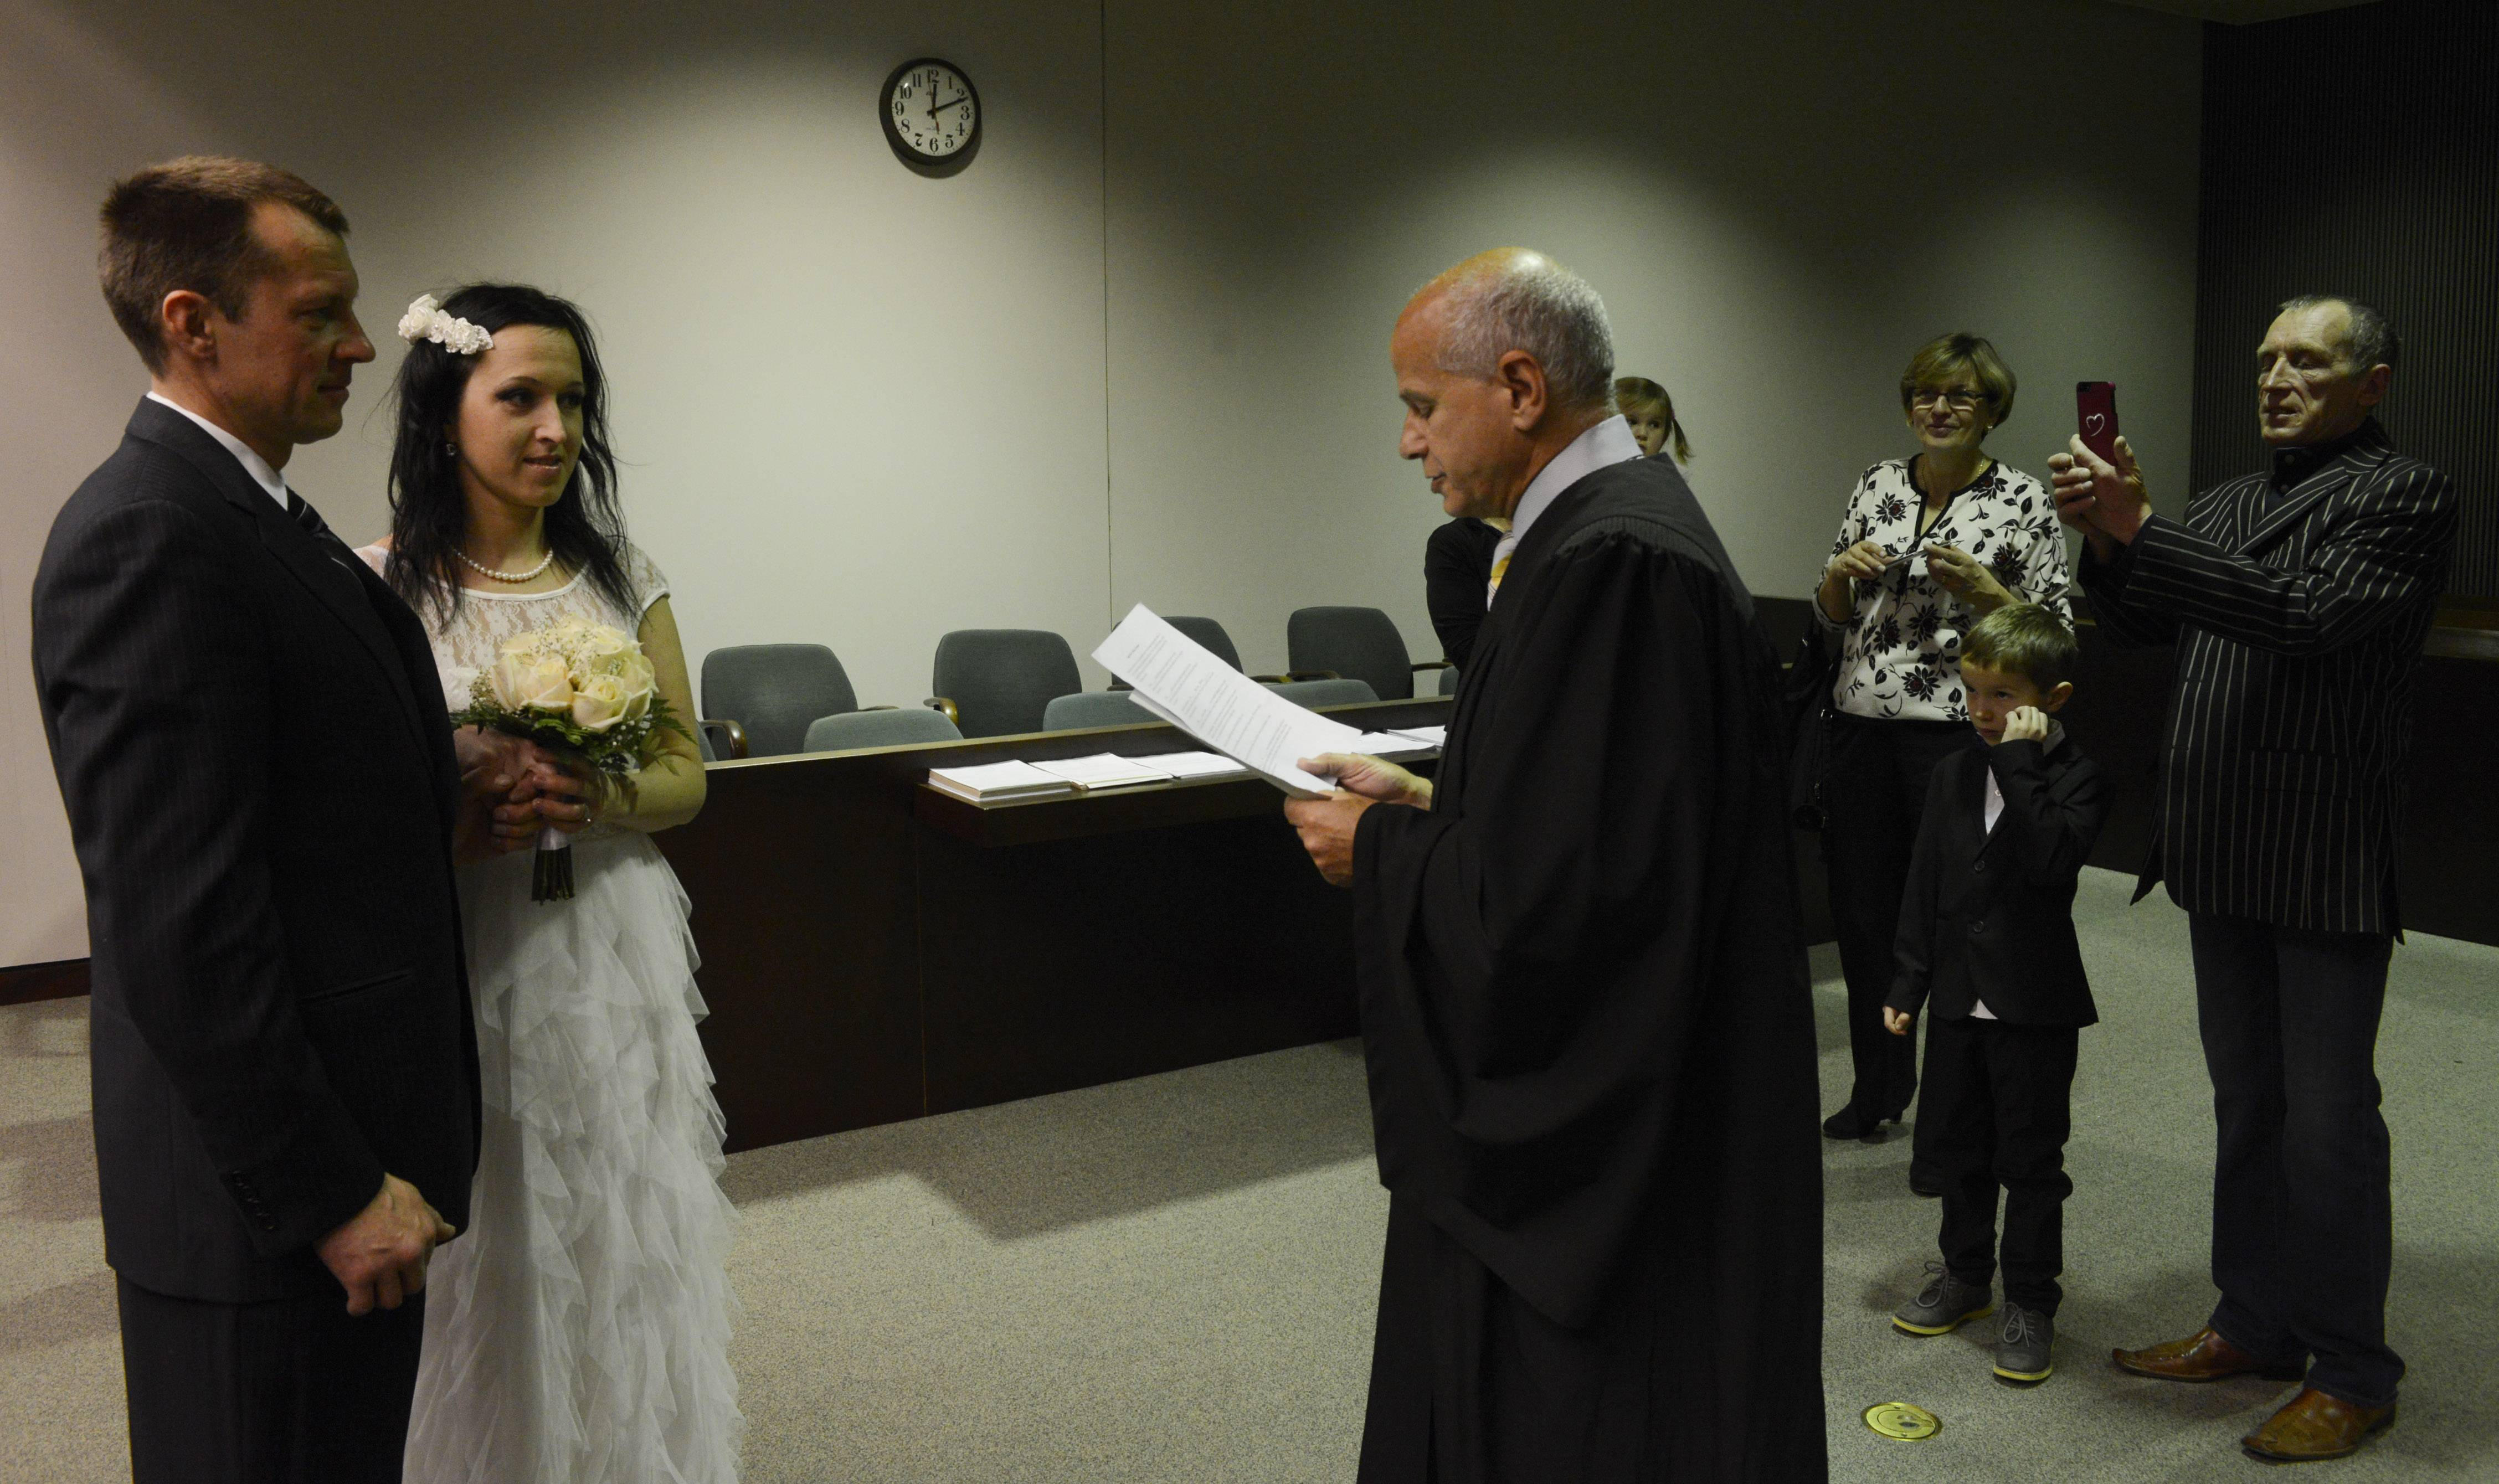 Audrius And Agne Cepronas Of Barrington Are Married By Judge Martin Agran  At The Rolling Meadows